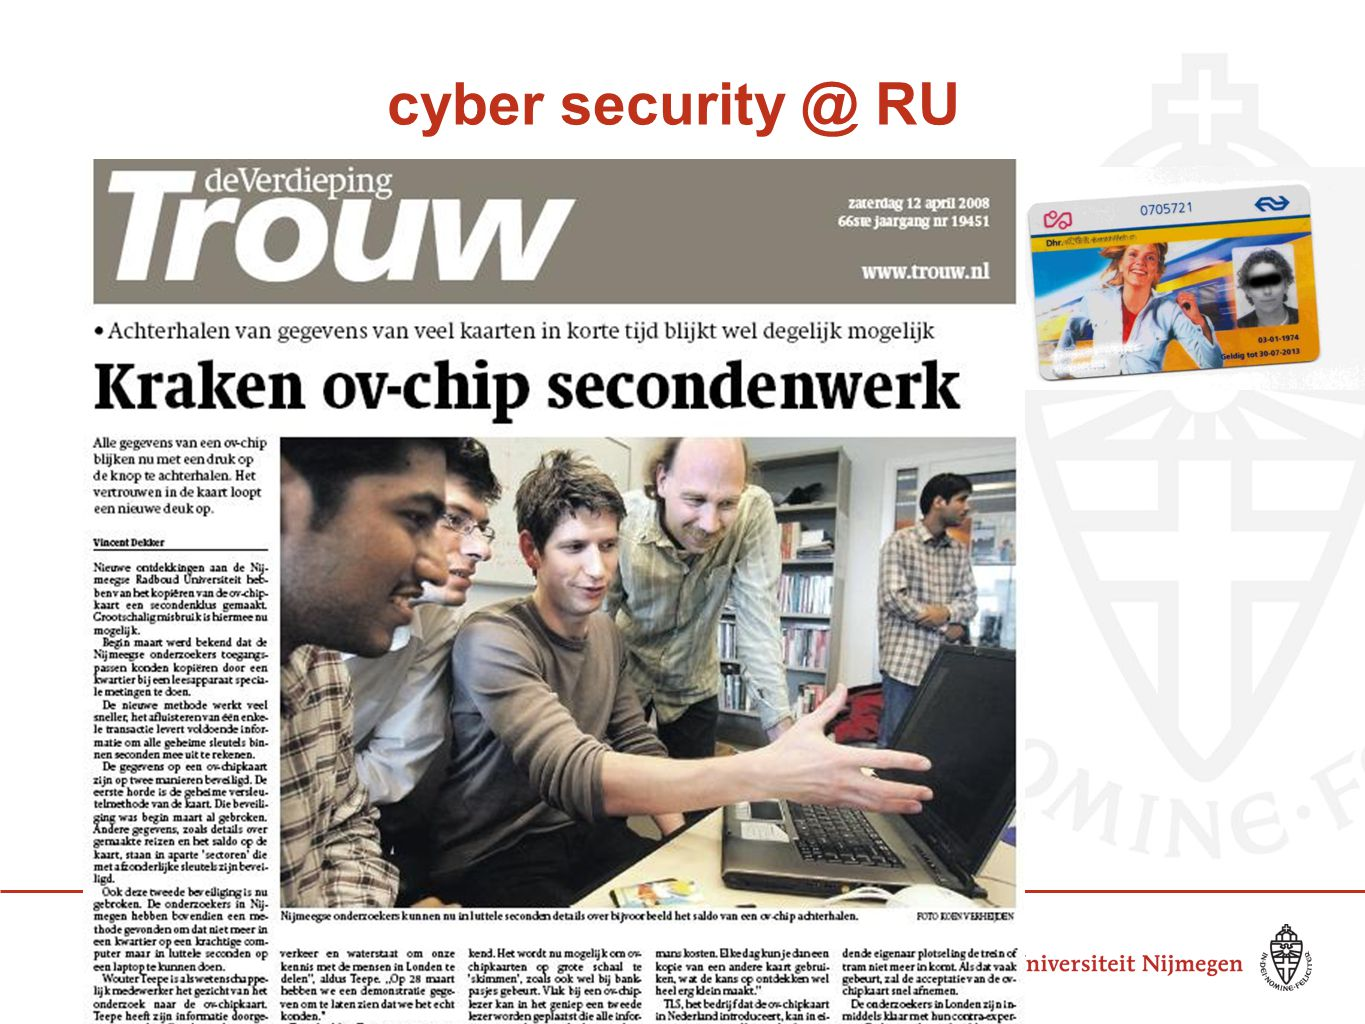 66 cyber security @ RU